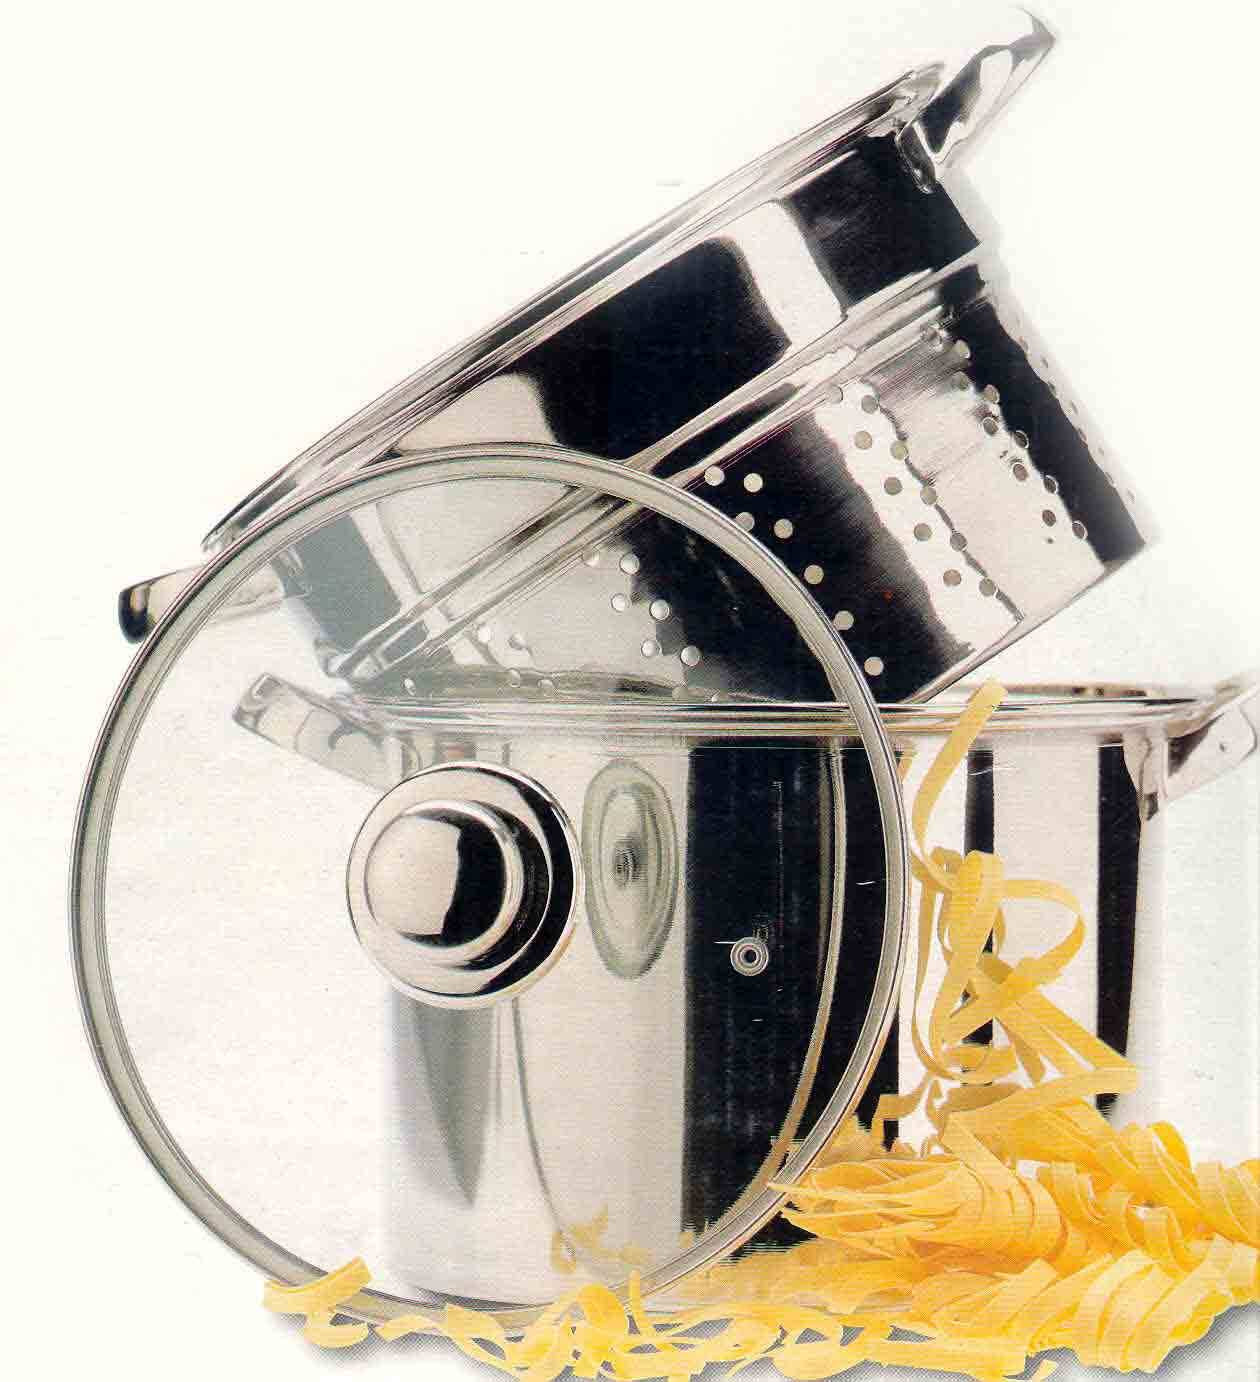 To sell Stainless steel Kitchenwares, Cookwares, Utensils